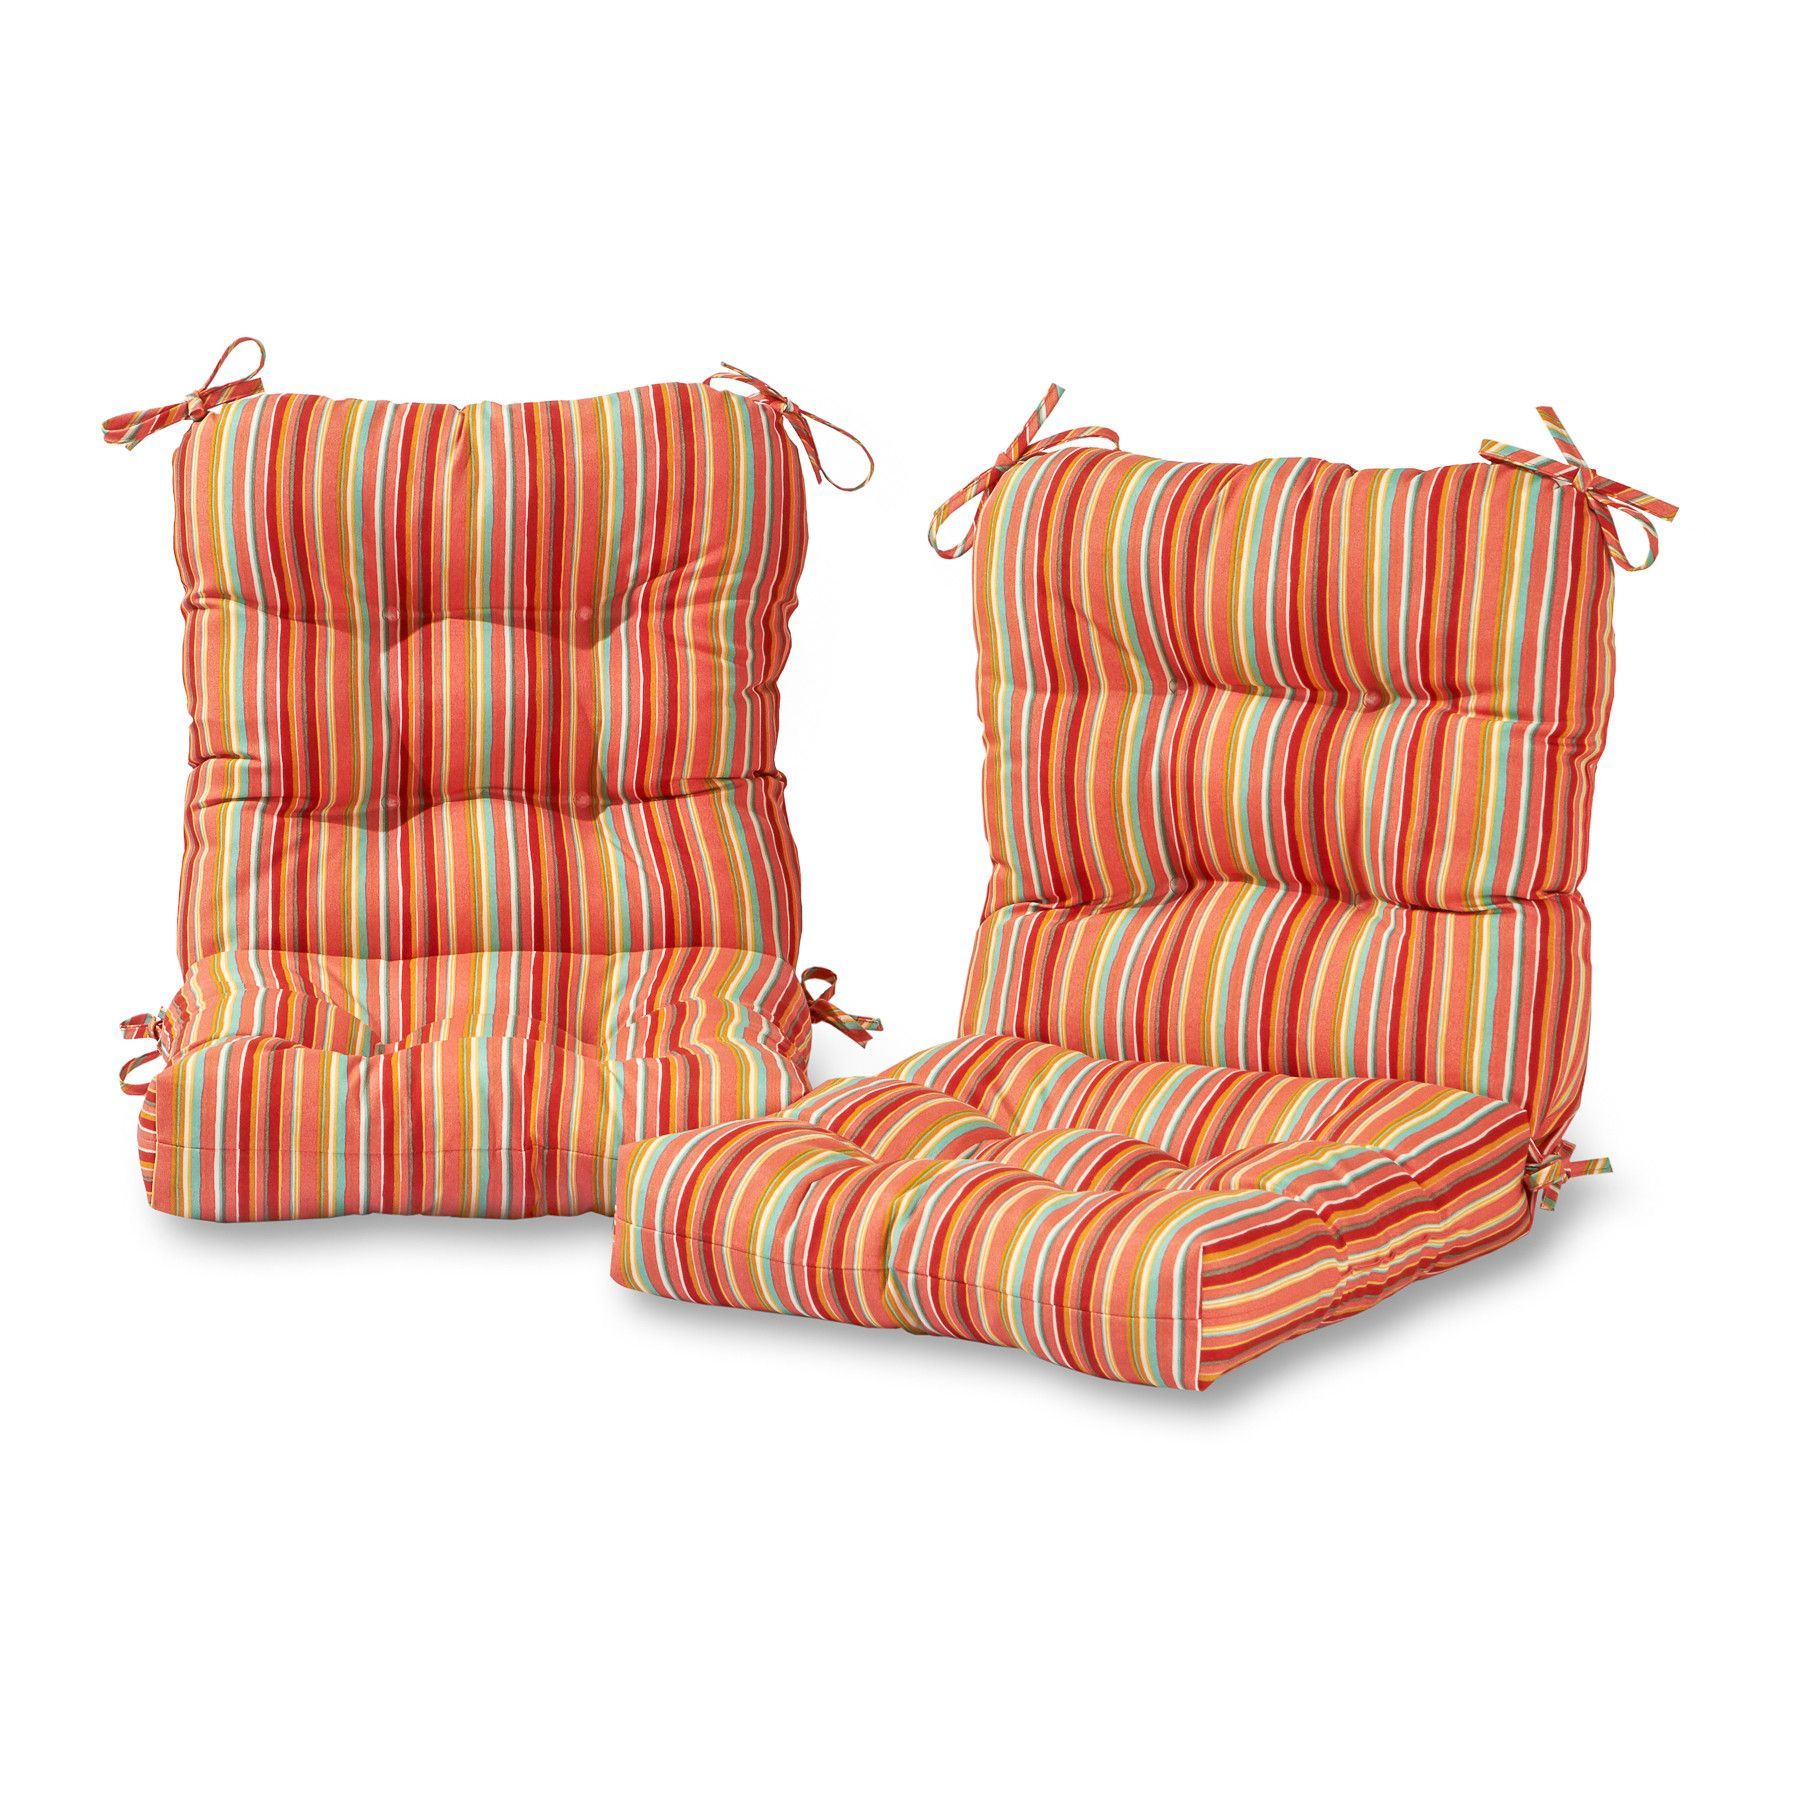 Coastal Collection Outdoor Chair Cushion SET OF 2